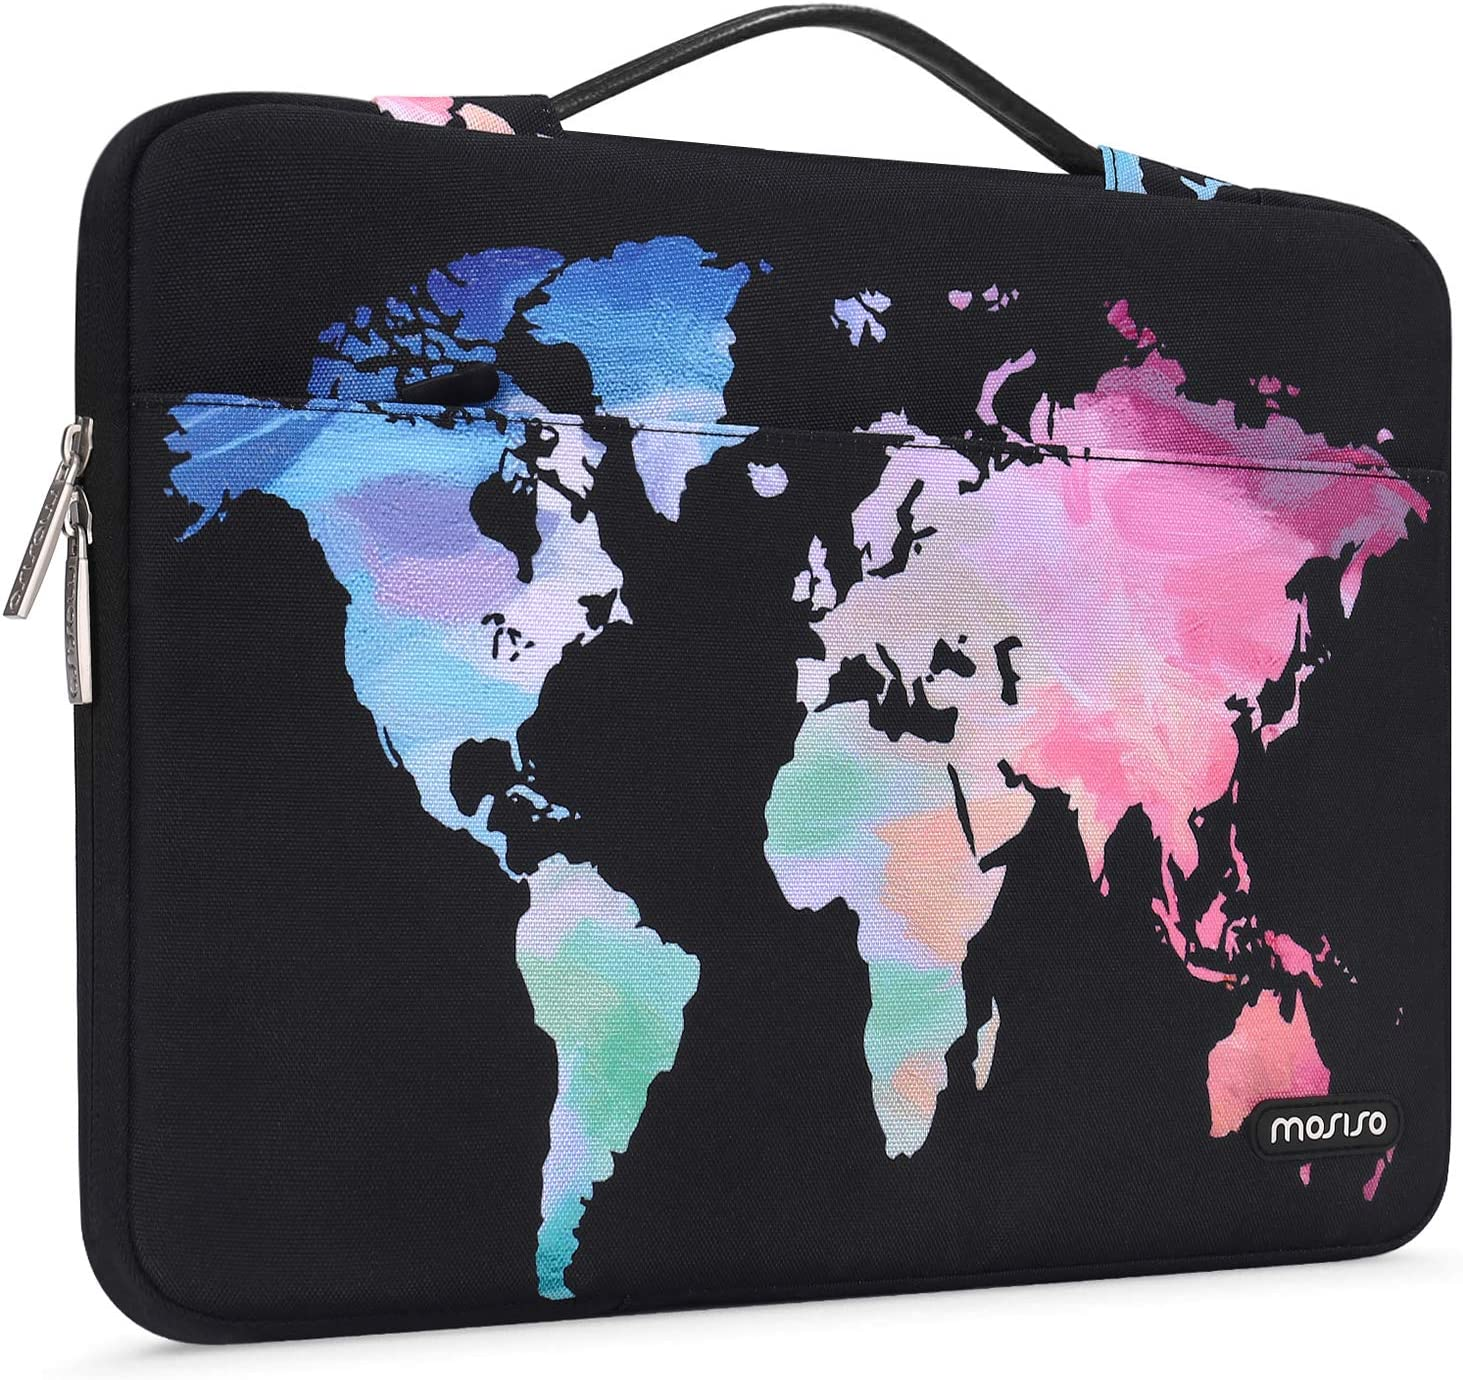 MOSISO Laptop Sleeve 360 Protective Case Bag Compatible with 13-13.3 inch MacBook Pro, MacBook Air, Notebook, Polyester Pattern Shockproof Handbag with Trolley Belt, Black World Map